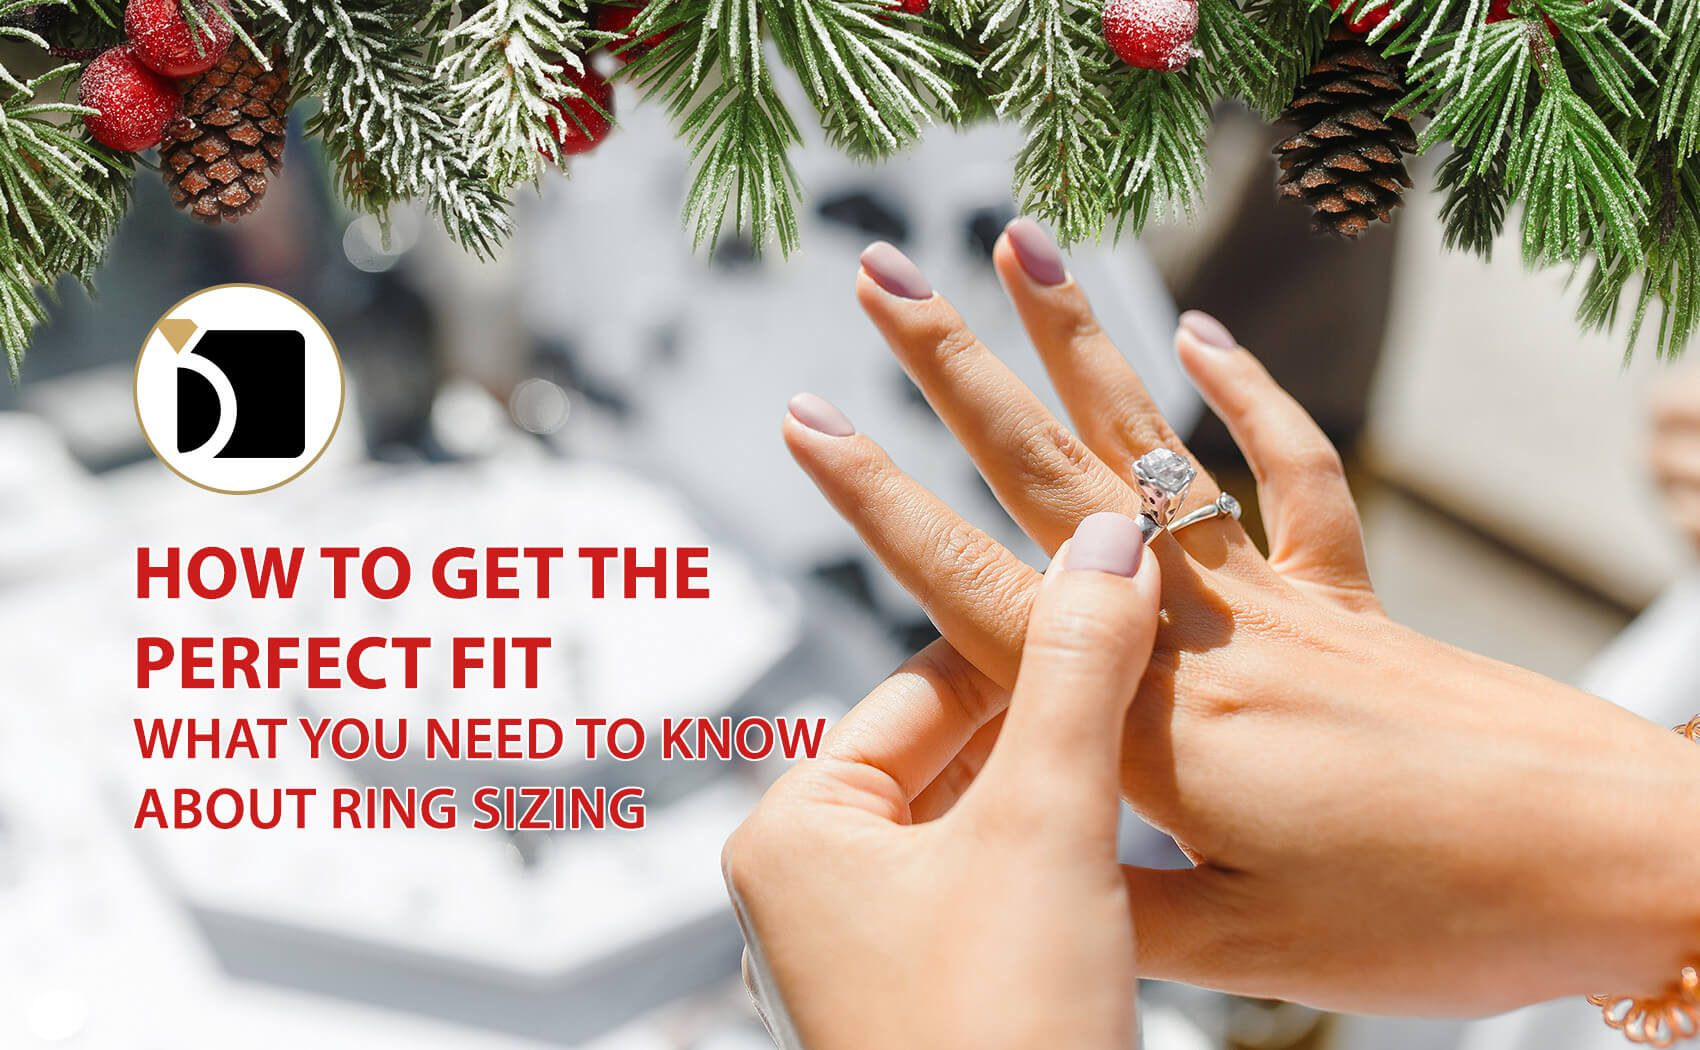 How To Get The Perfect Fit – Ring Sizing